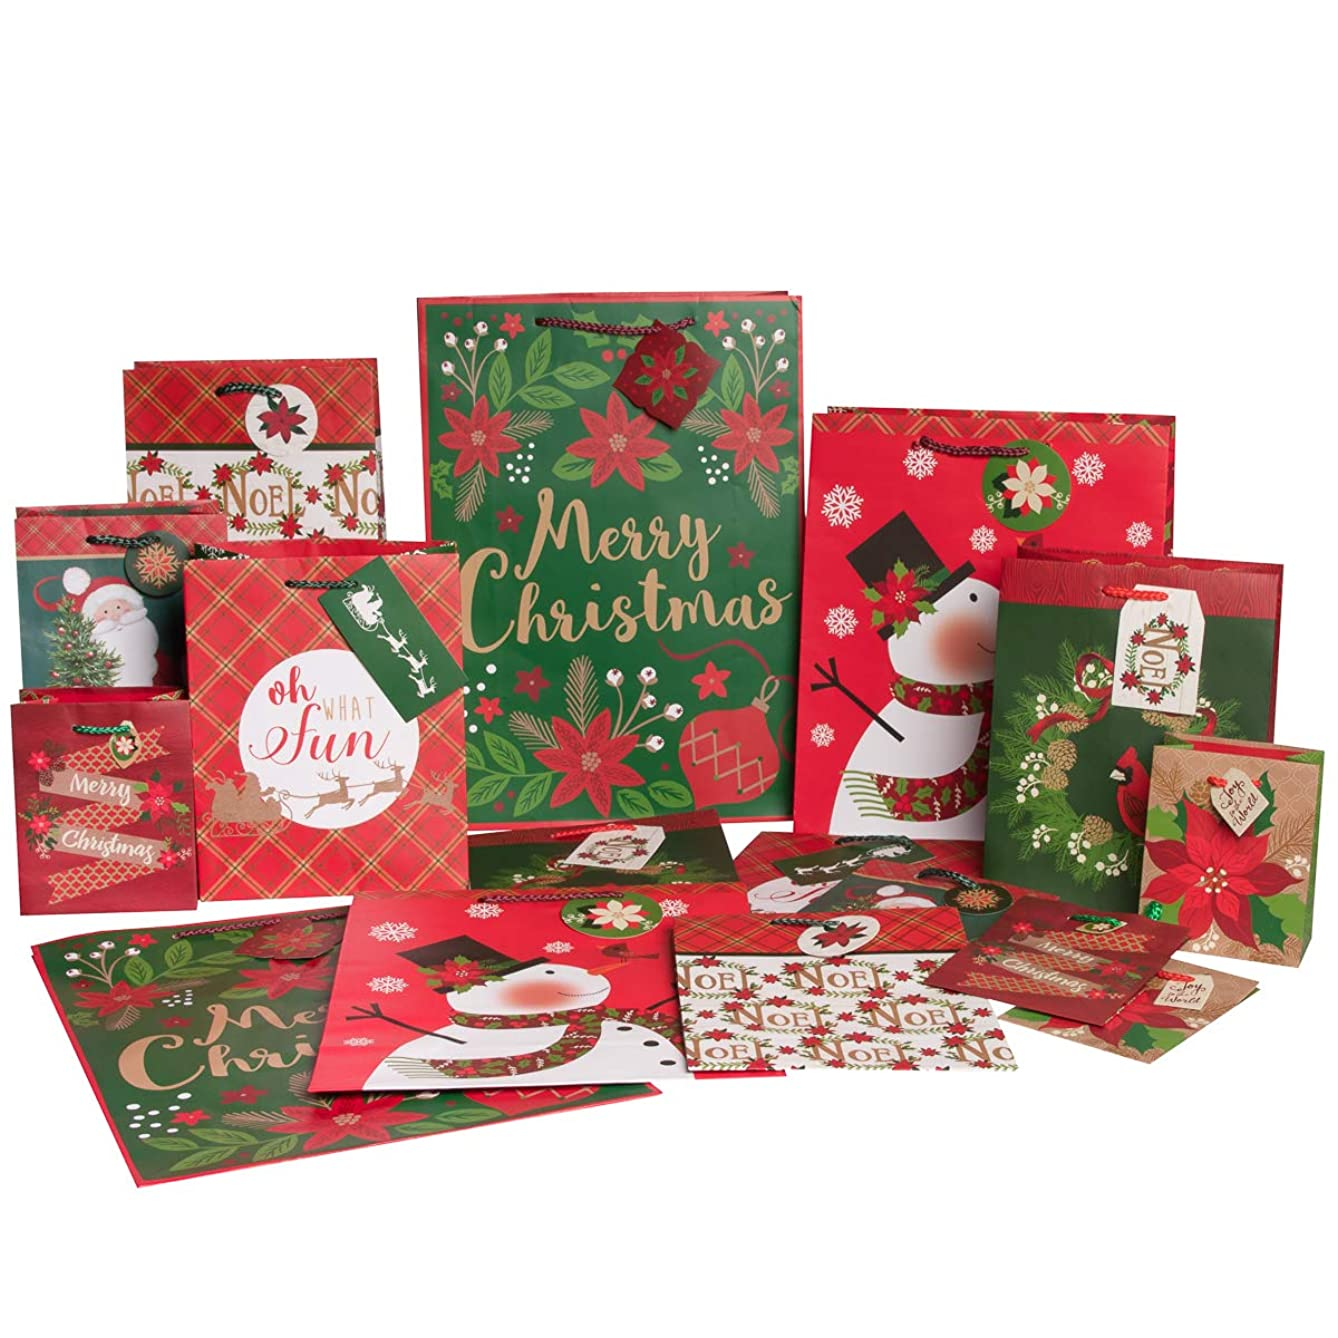 Paper Craft (16 Pack) Christmas Gift Bags, Holiday Gift Bags Bulk Set with Assorted Sizes For Gifts, Party Favors, Party Supplies